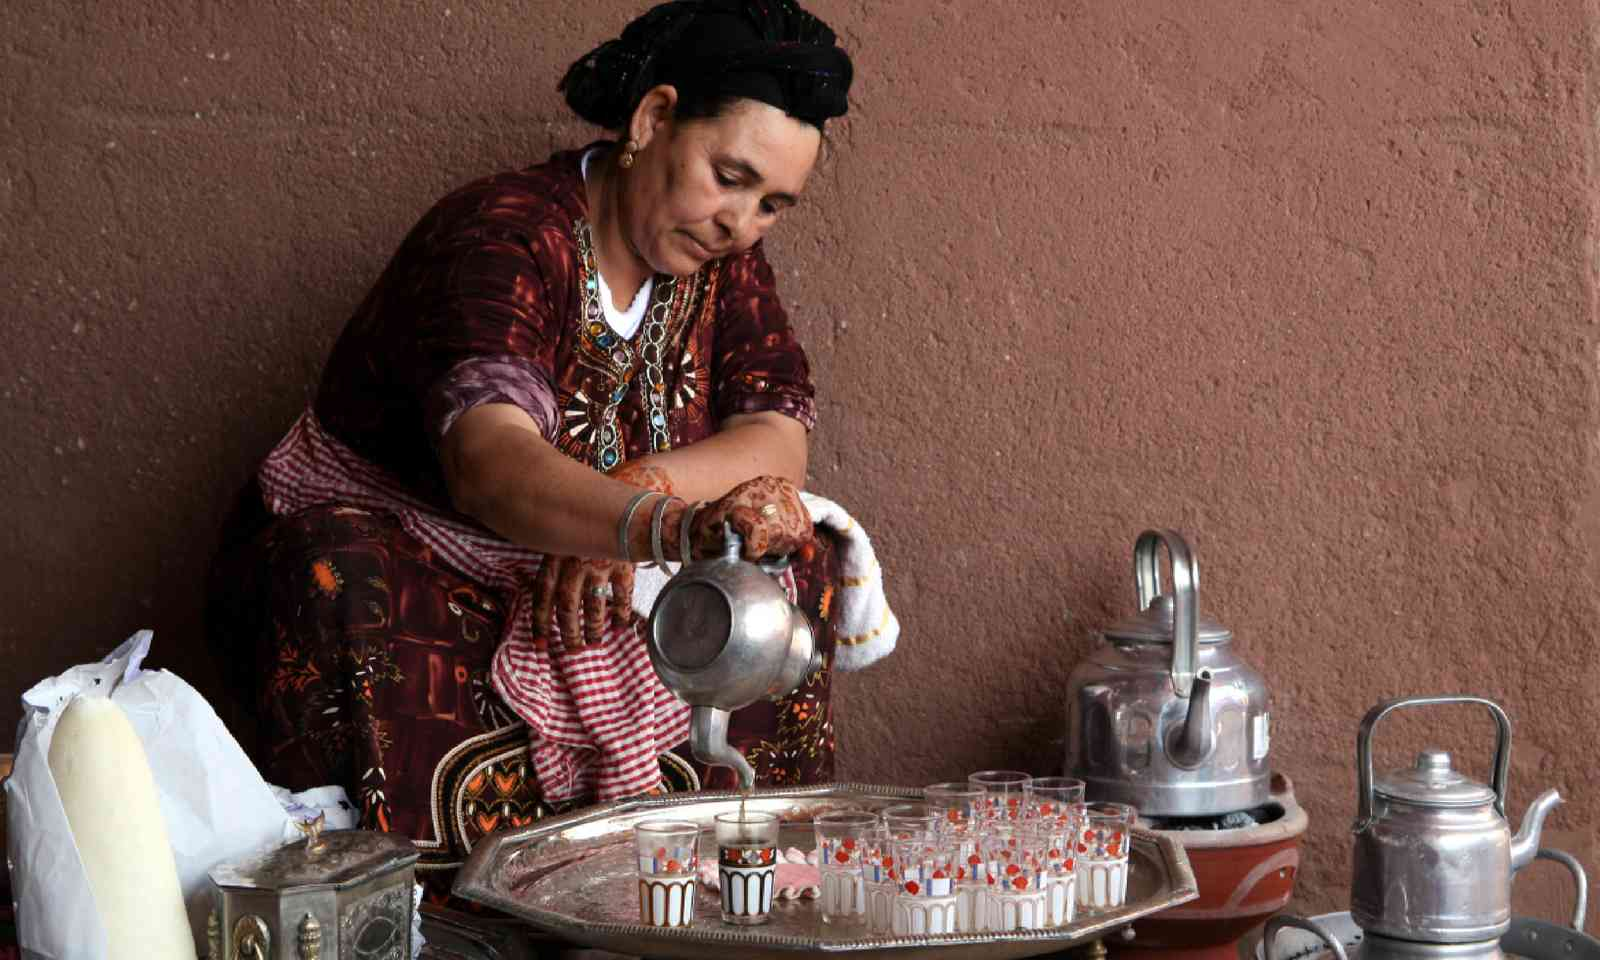 Berber woman performs a tea ceremony in Marrakesh, Morocco (Shutterstock)